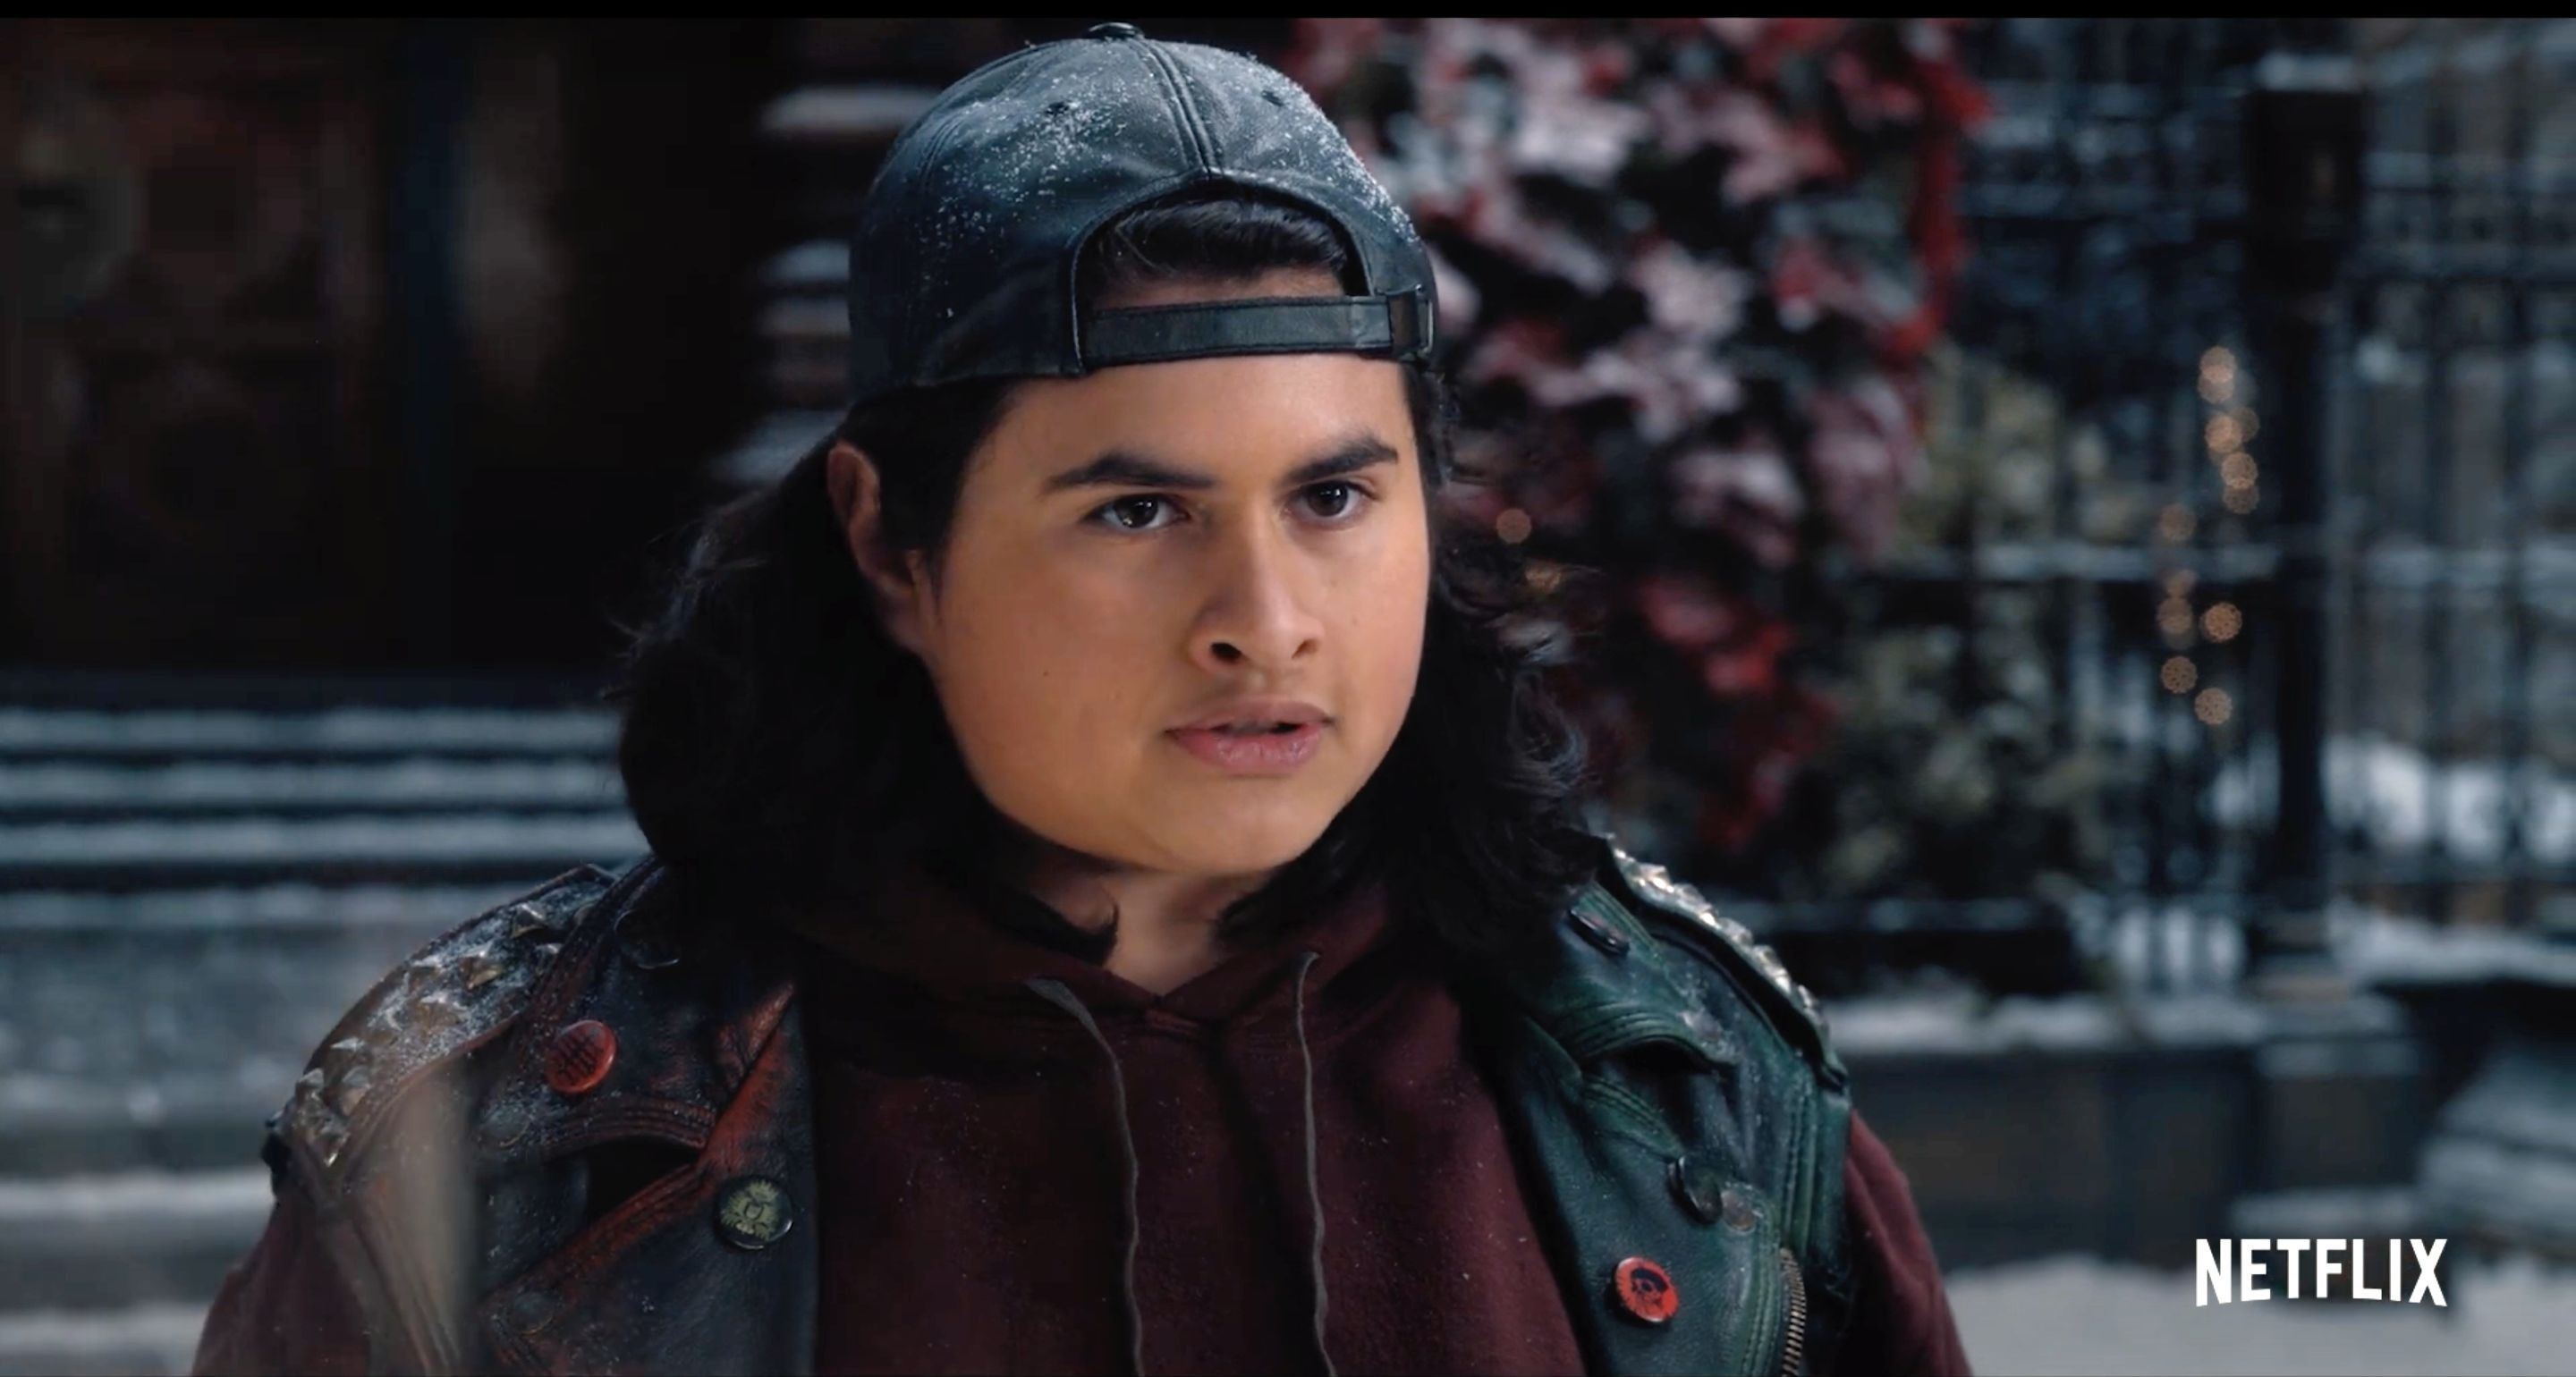 Christmas Chronicles 2020 Smotret Online Christmas Chronicles 2 trailer sees Deadpool 2 star causing chaos